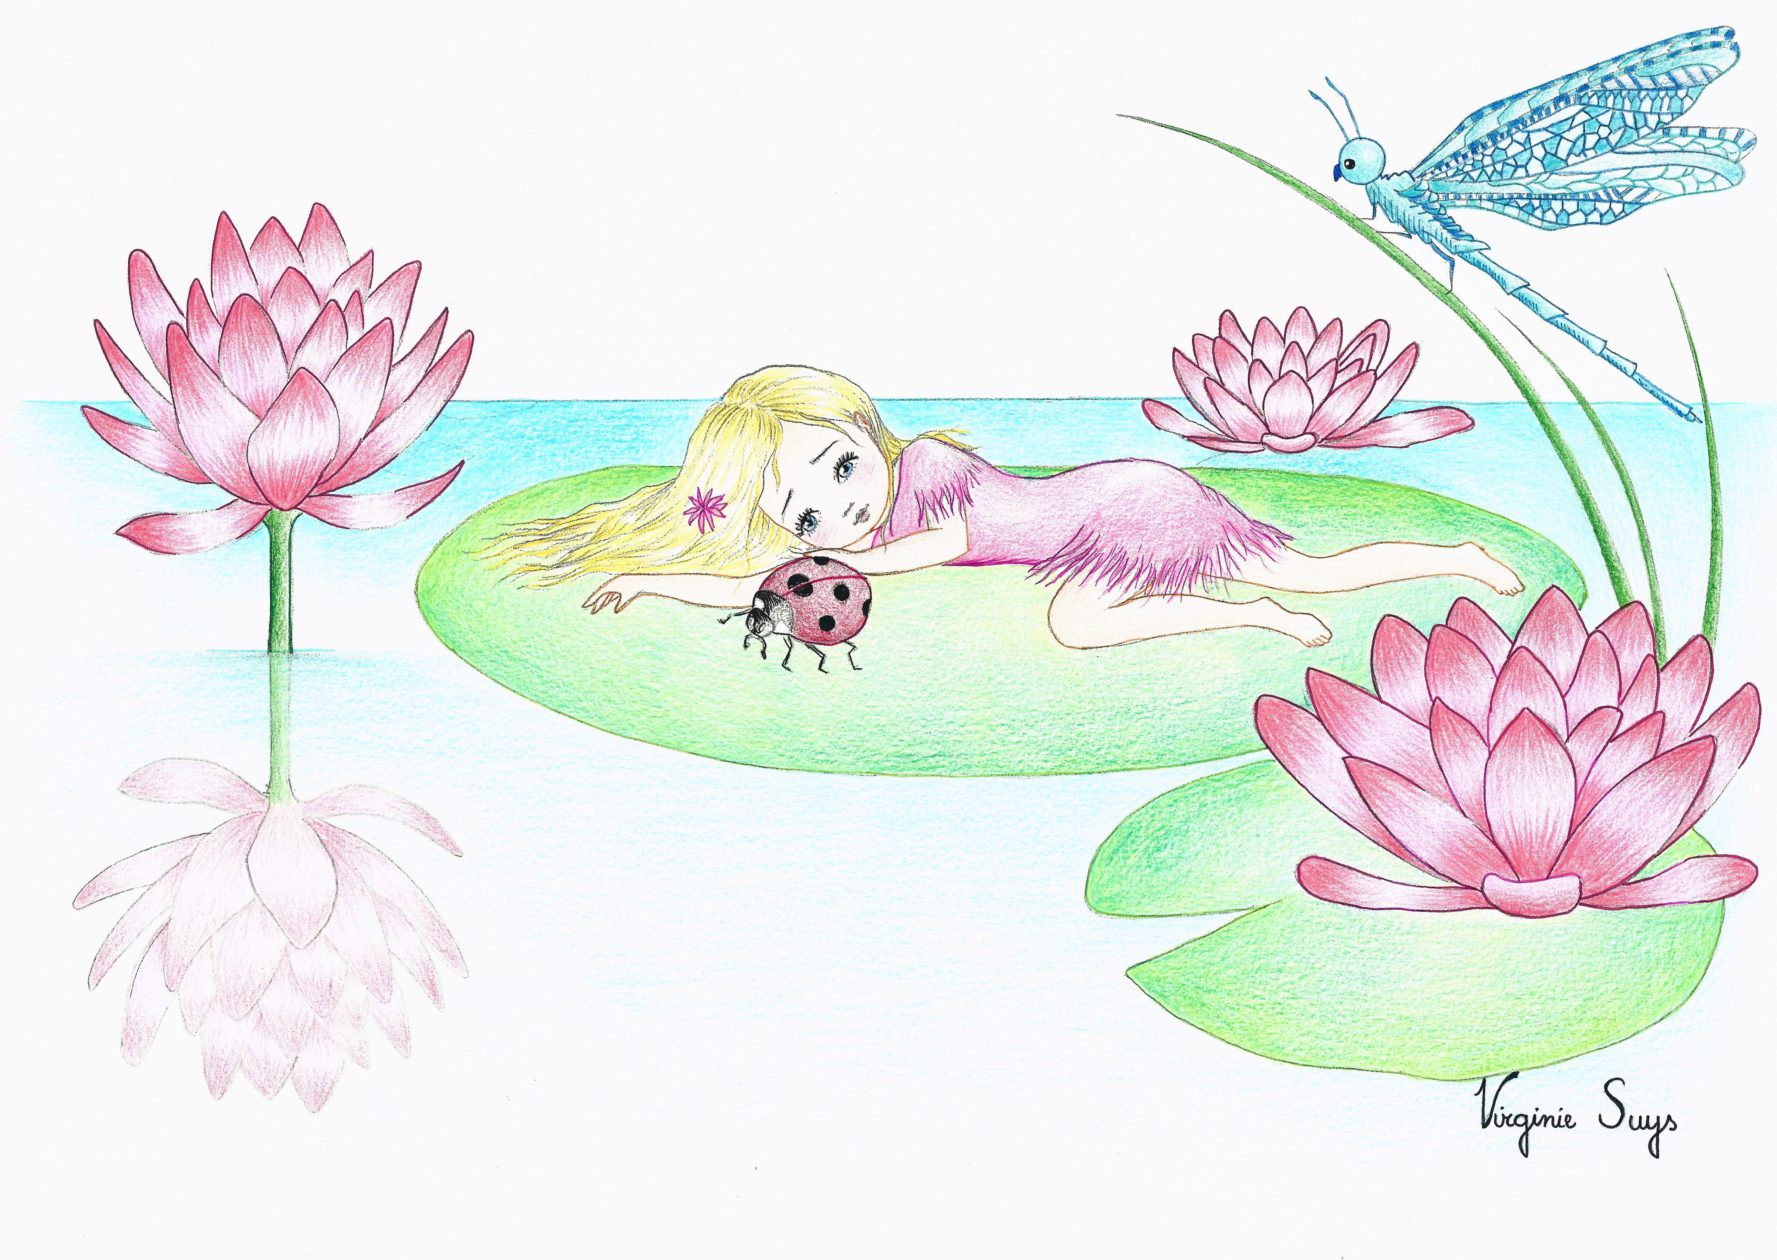 Thumbelina by the waterlillys in light green illustration